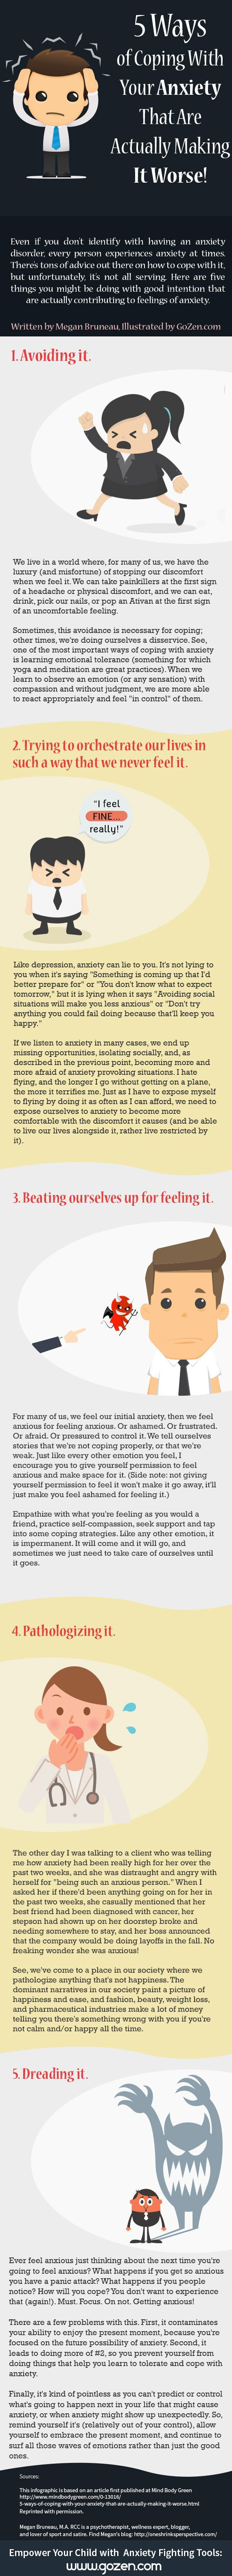 5 ways of coping with anxiety that can actually make it worse… check out the full list below along with some helpful alternatives for coping with anxiety.    //    This infographic was created in partnership between Megan Bruneau, M.A. RC and...